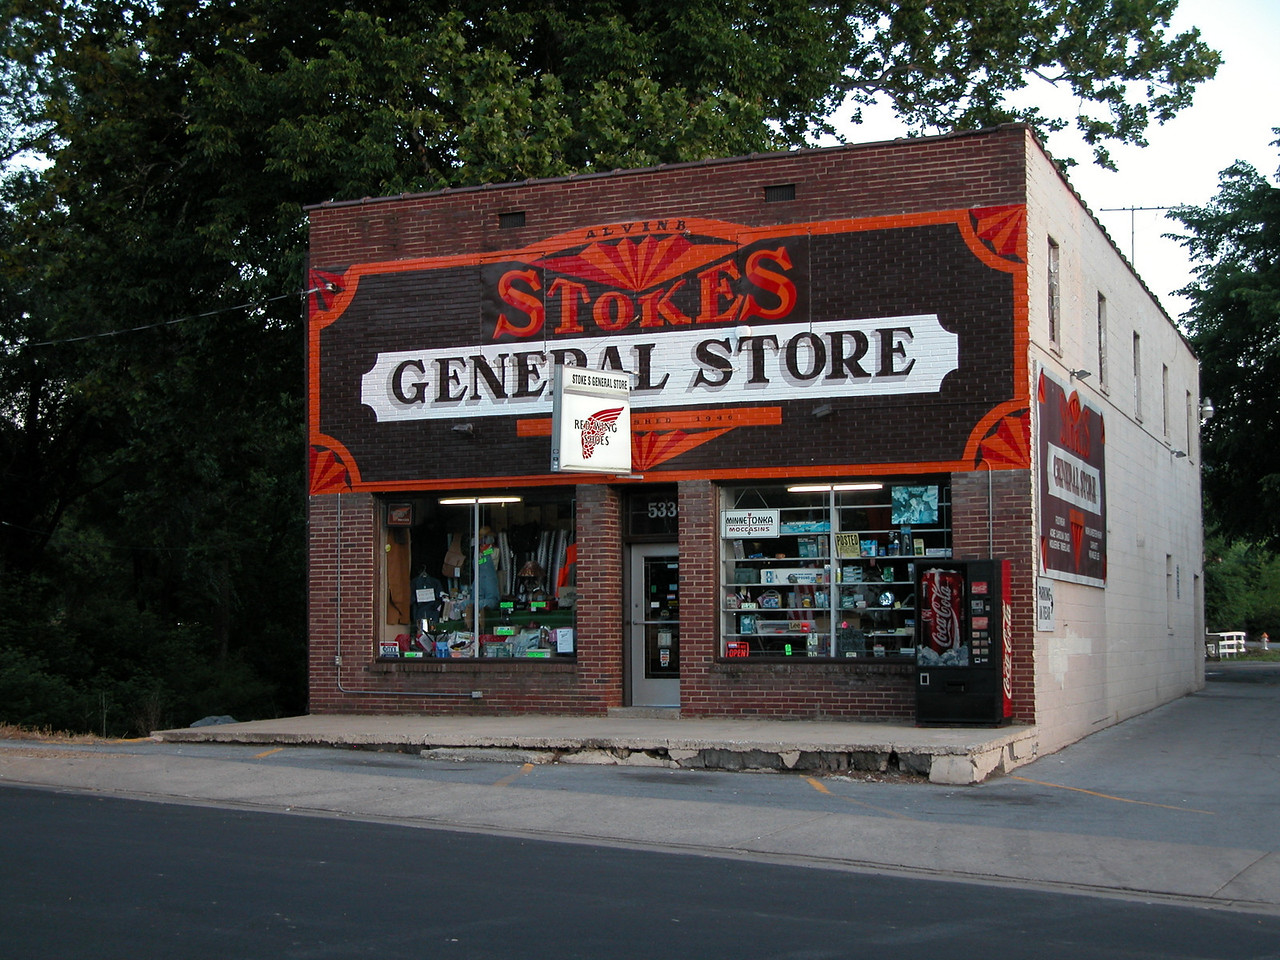 Another shot of Stokes General Store.  Sits right on the edge of a stream.